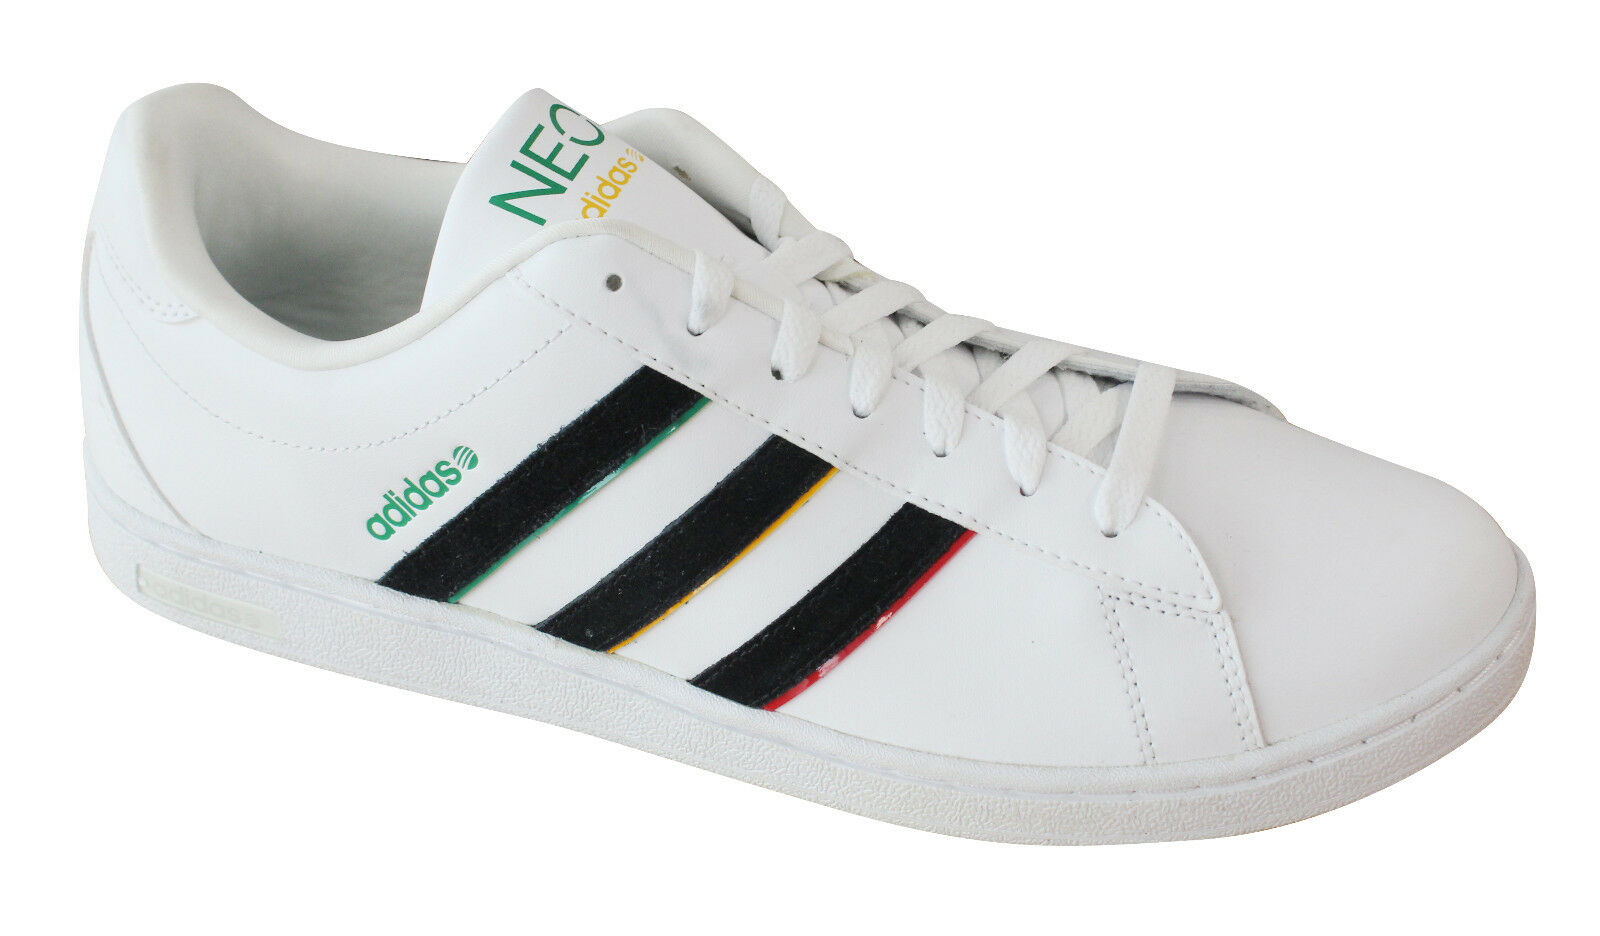 Bdidas Neo Derby Casual Mens Trainers In White/Black X73540 U69